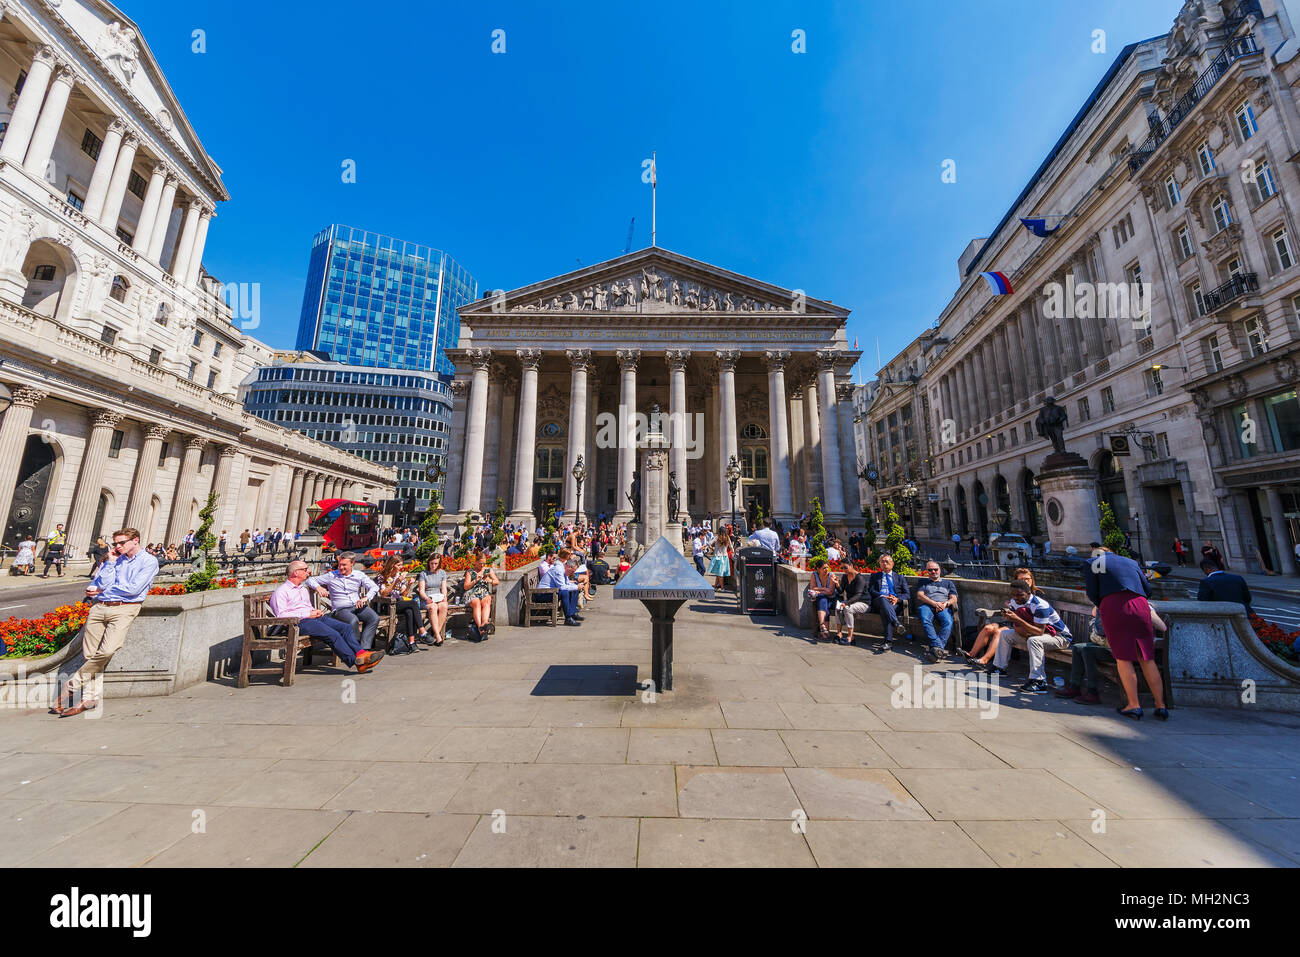 LONDON, UNITED KINGDOM - APRIL 19: VIew of the Royal Exchange building outside the bank of England in the Bank financial district area on April 19, 20 - Stock Image